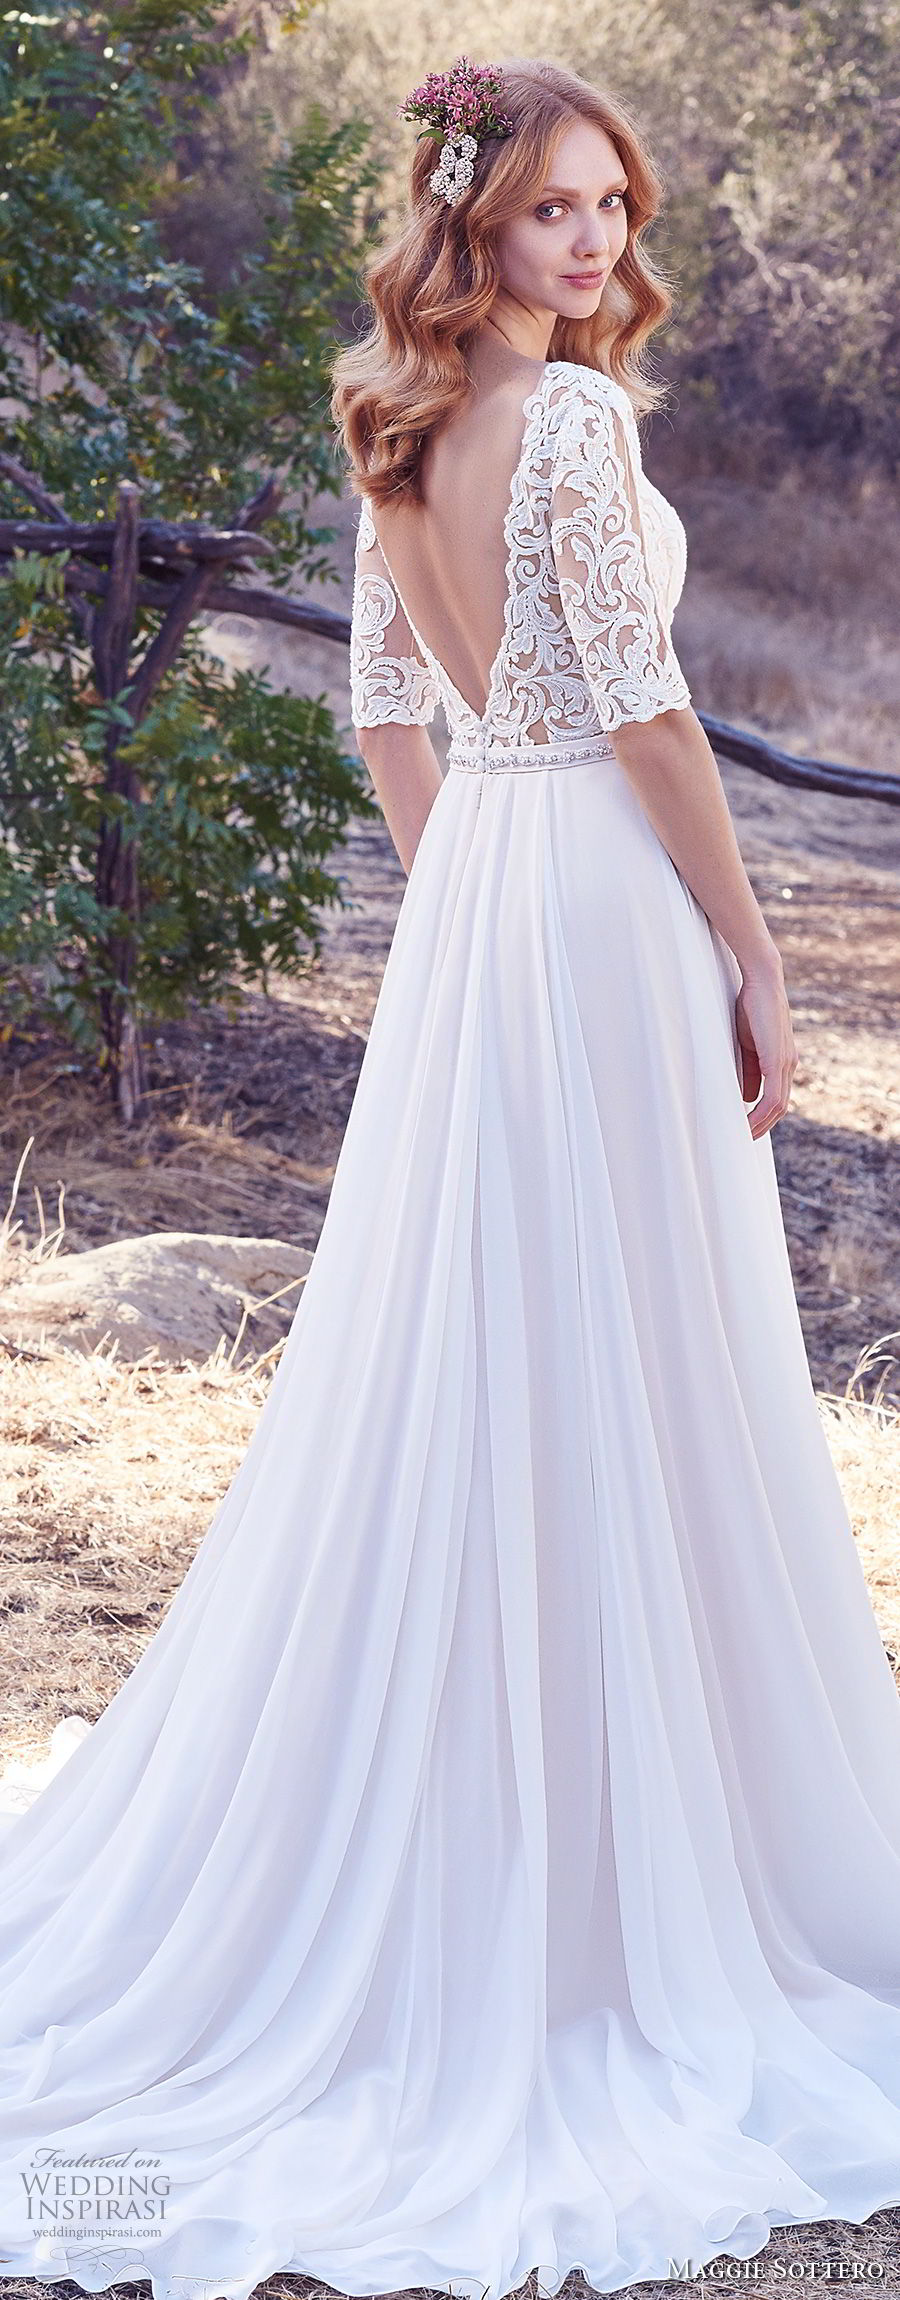 maggie sottero fall 2017 bridal half sleeves illusion bateau sweetheart neckline heavily embellished bodice romantic elegant soft a line wedding dress open v back chapel train (983) bv